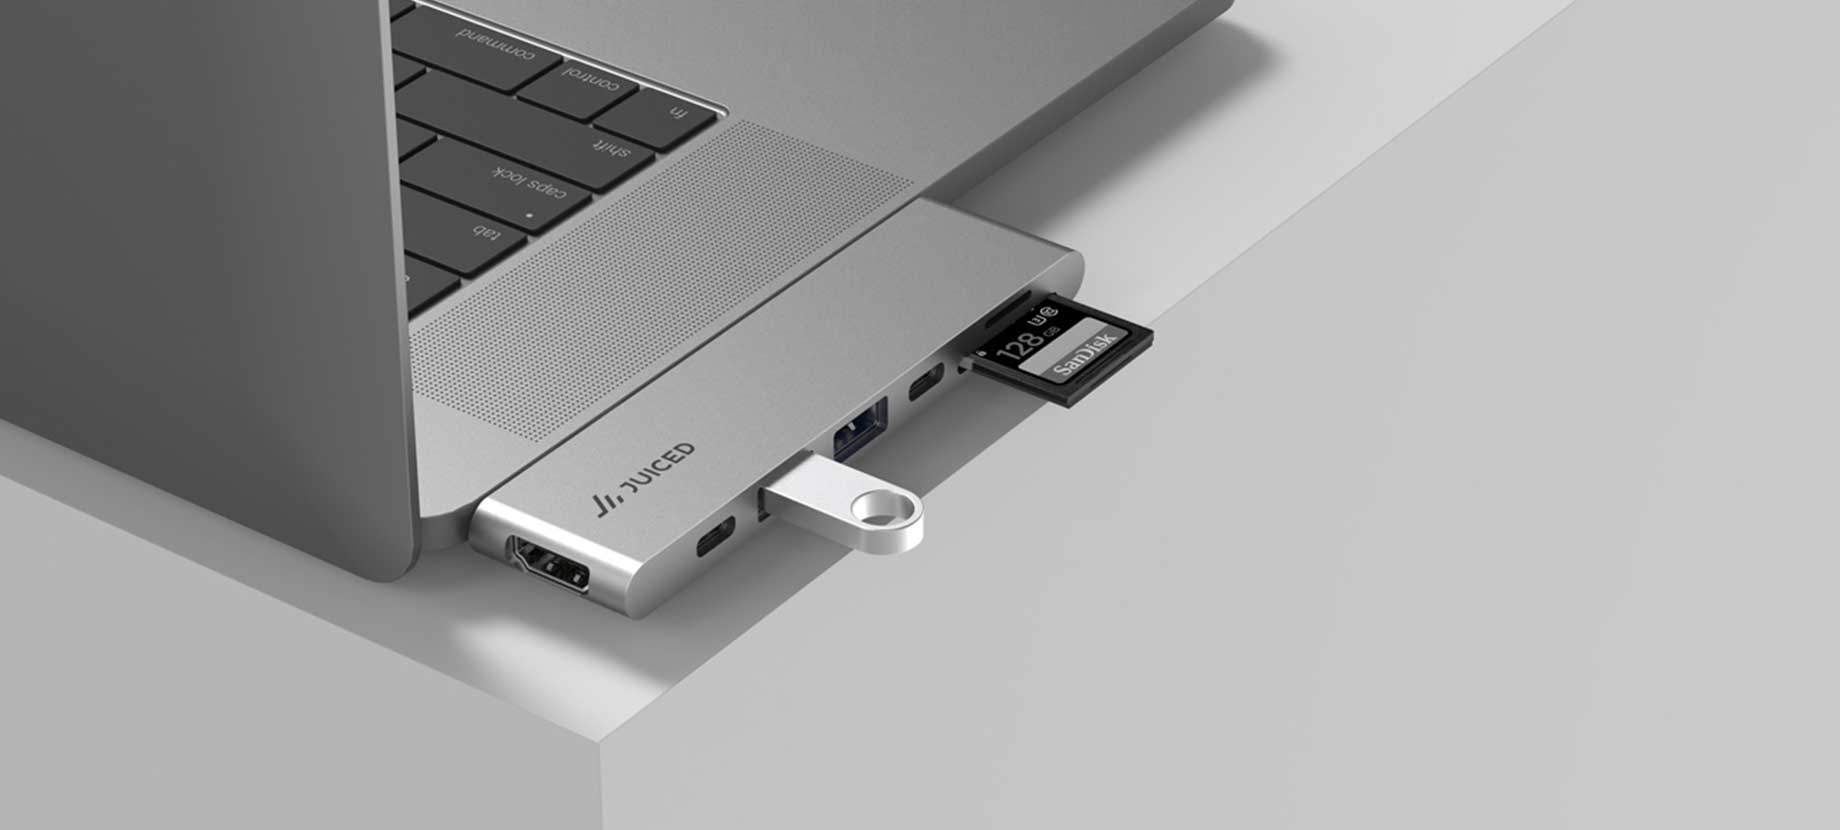 Macbook Pro Adapters